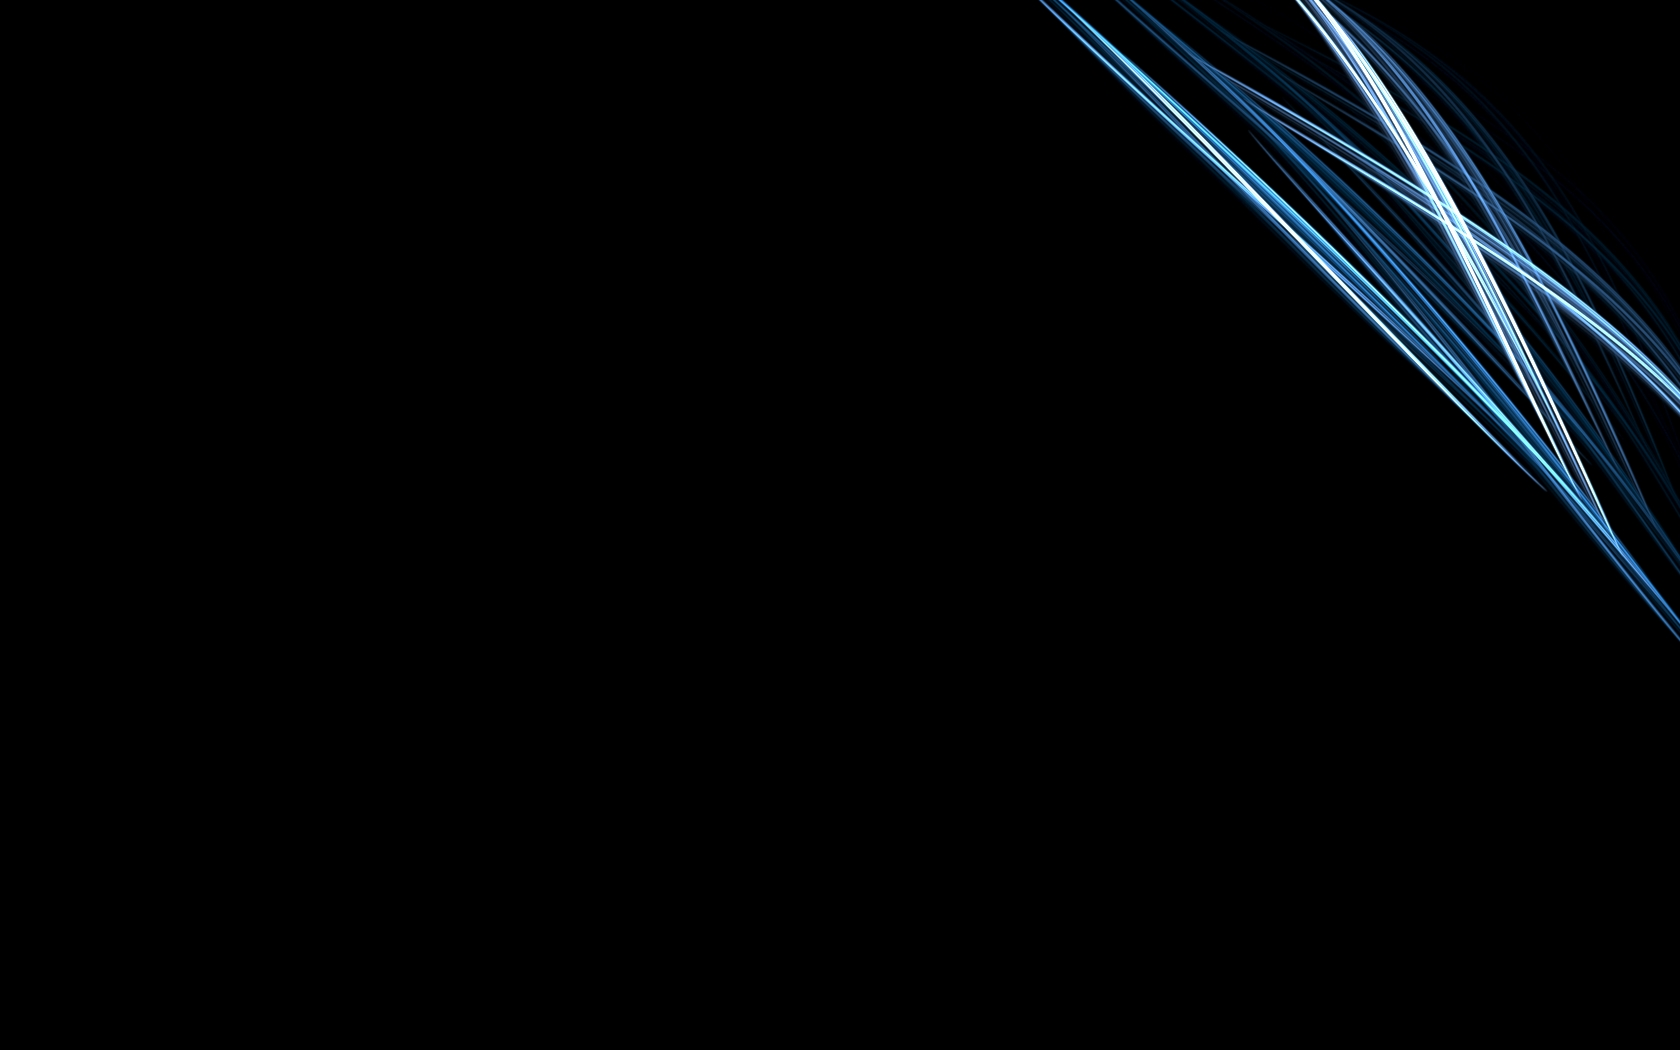 Black Blue Abstract Wallpaper 2026 Hd Wallpapers in Abstract ...